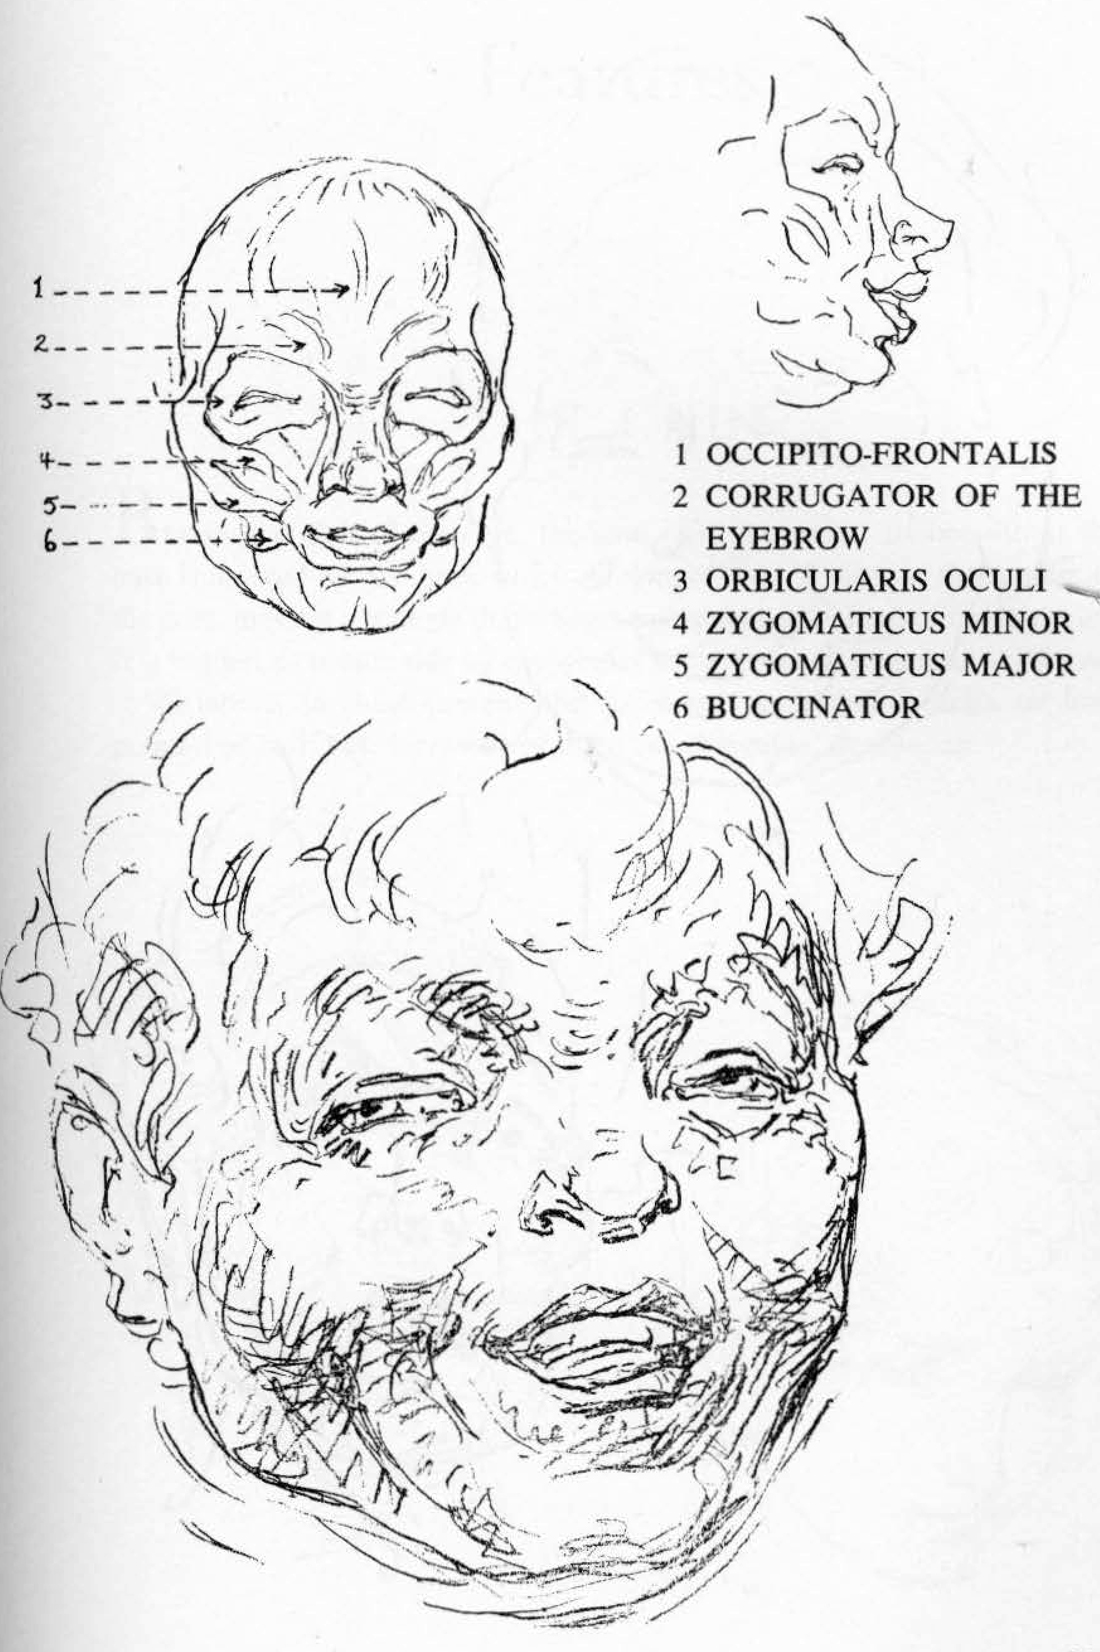 The variable expressions of the human face